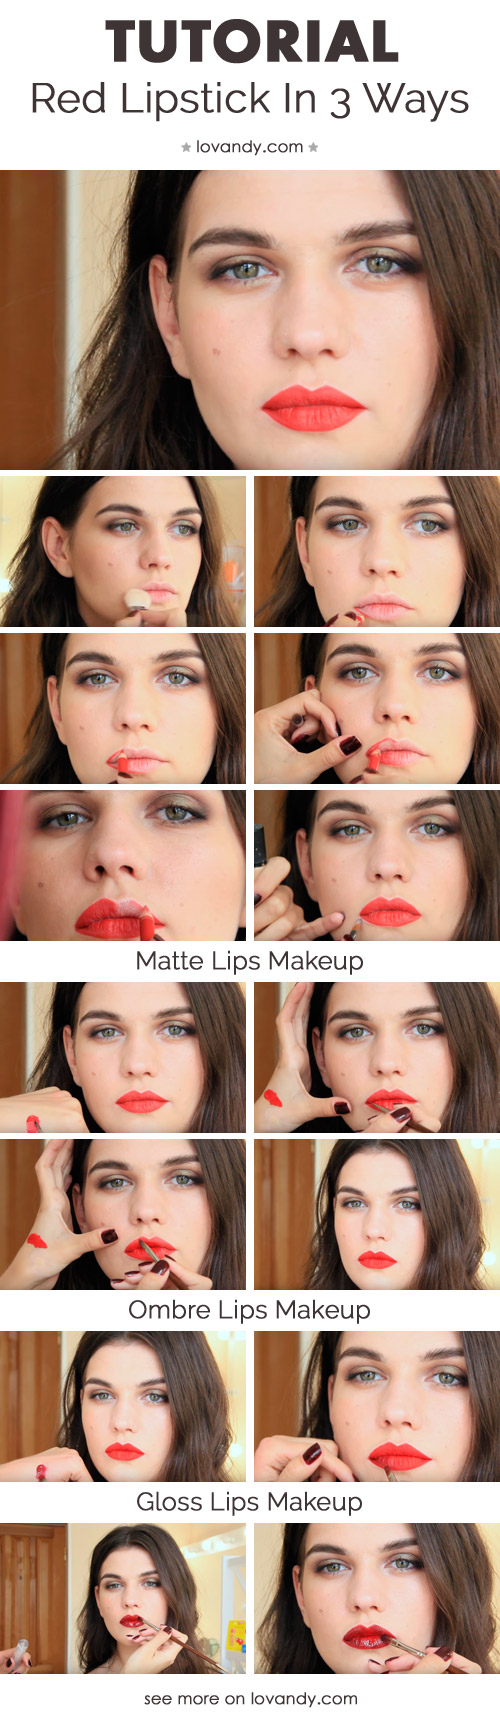 how to put on red lipstick professionally